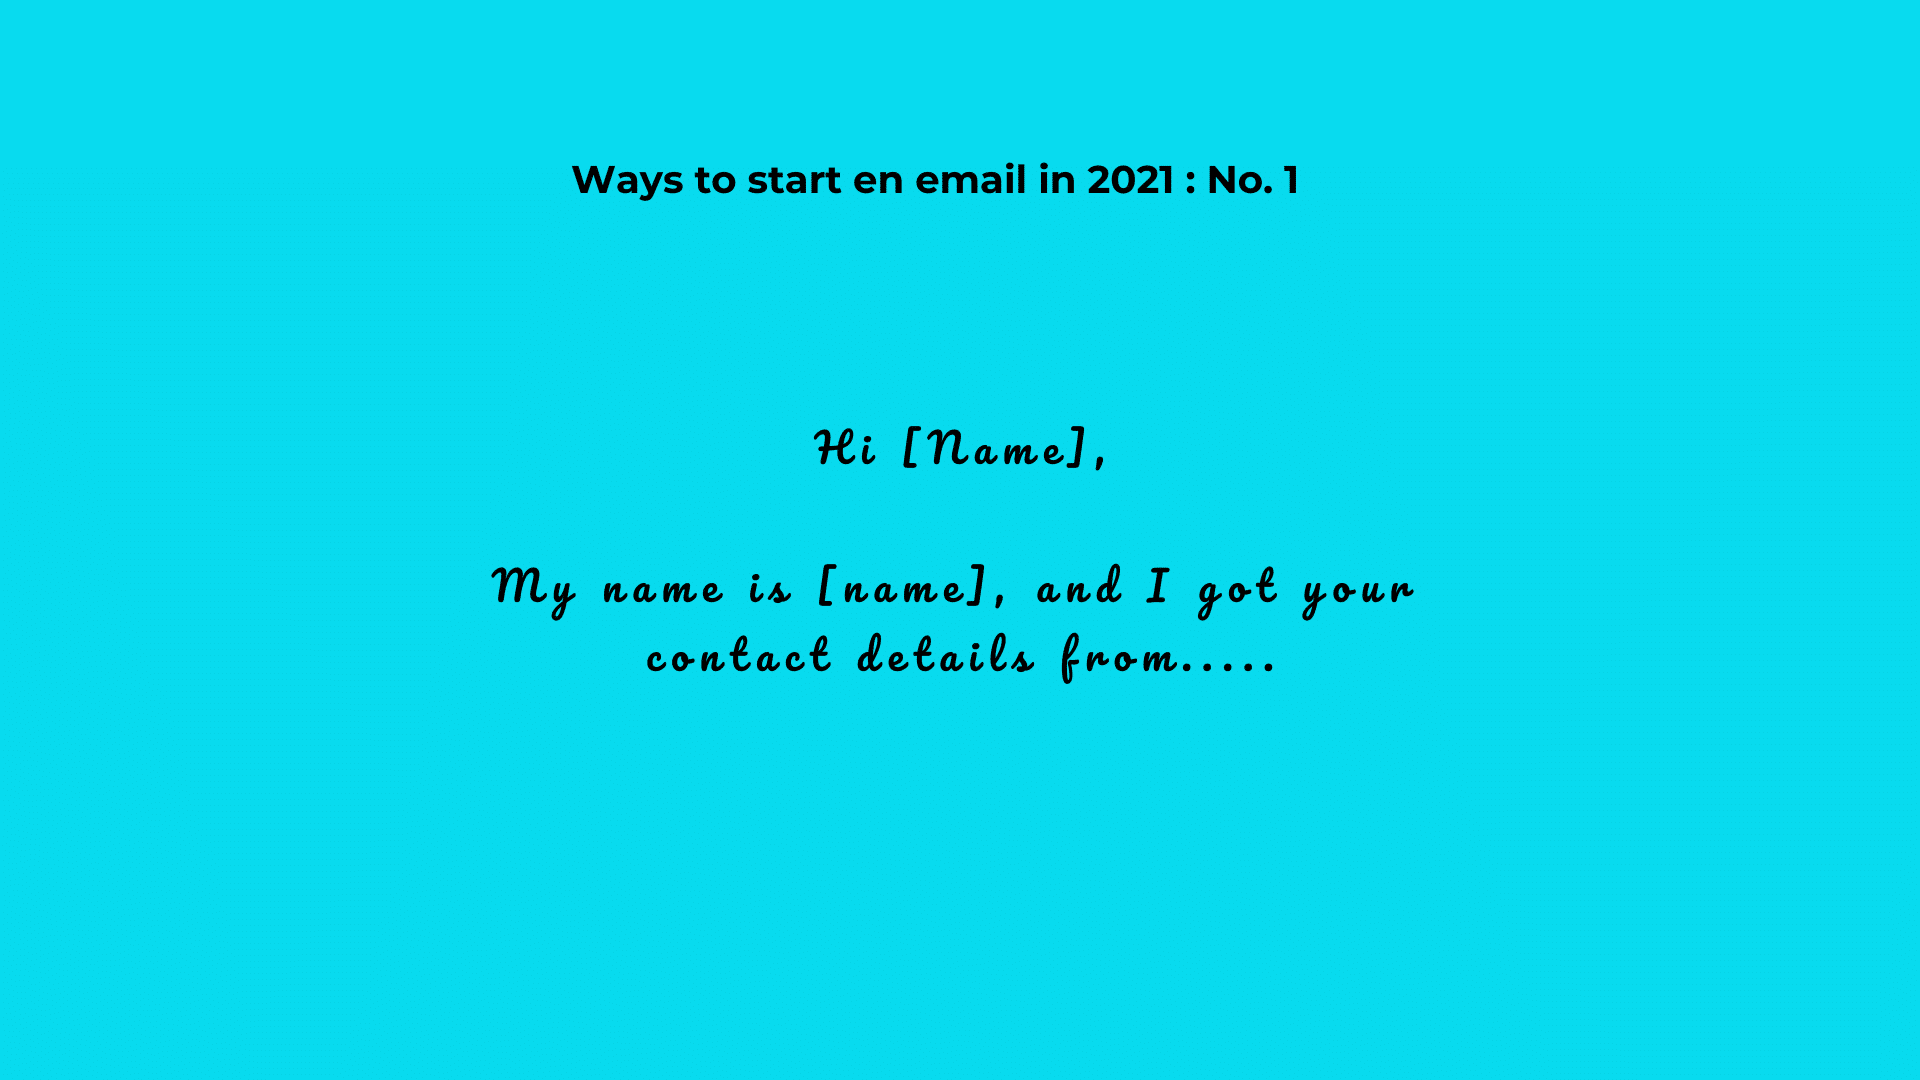 19-ways-to-start-an-email-way-1